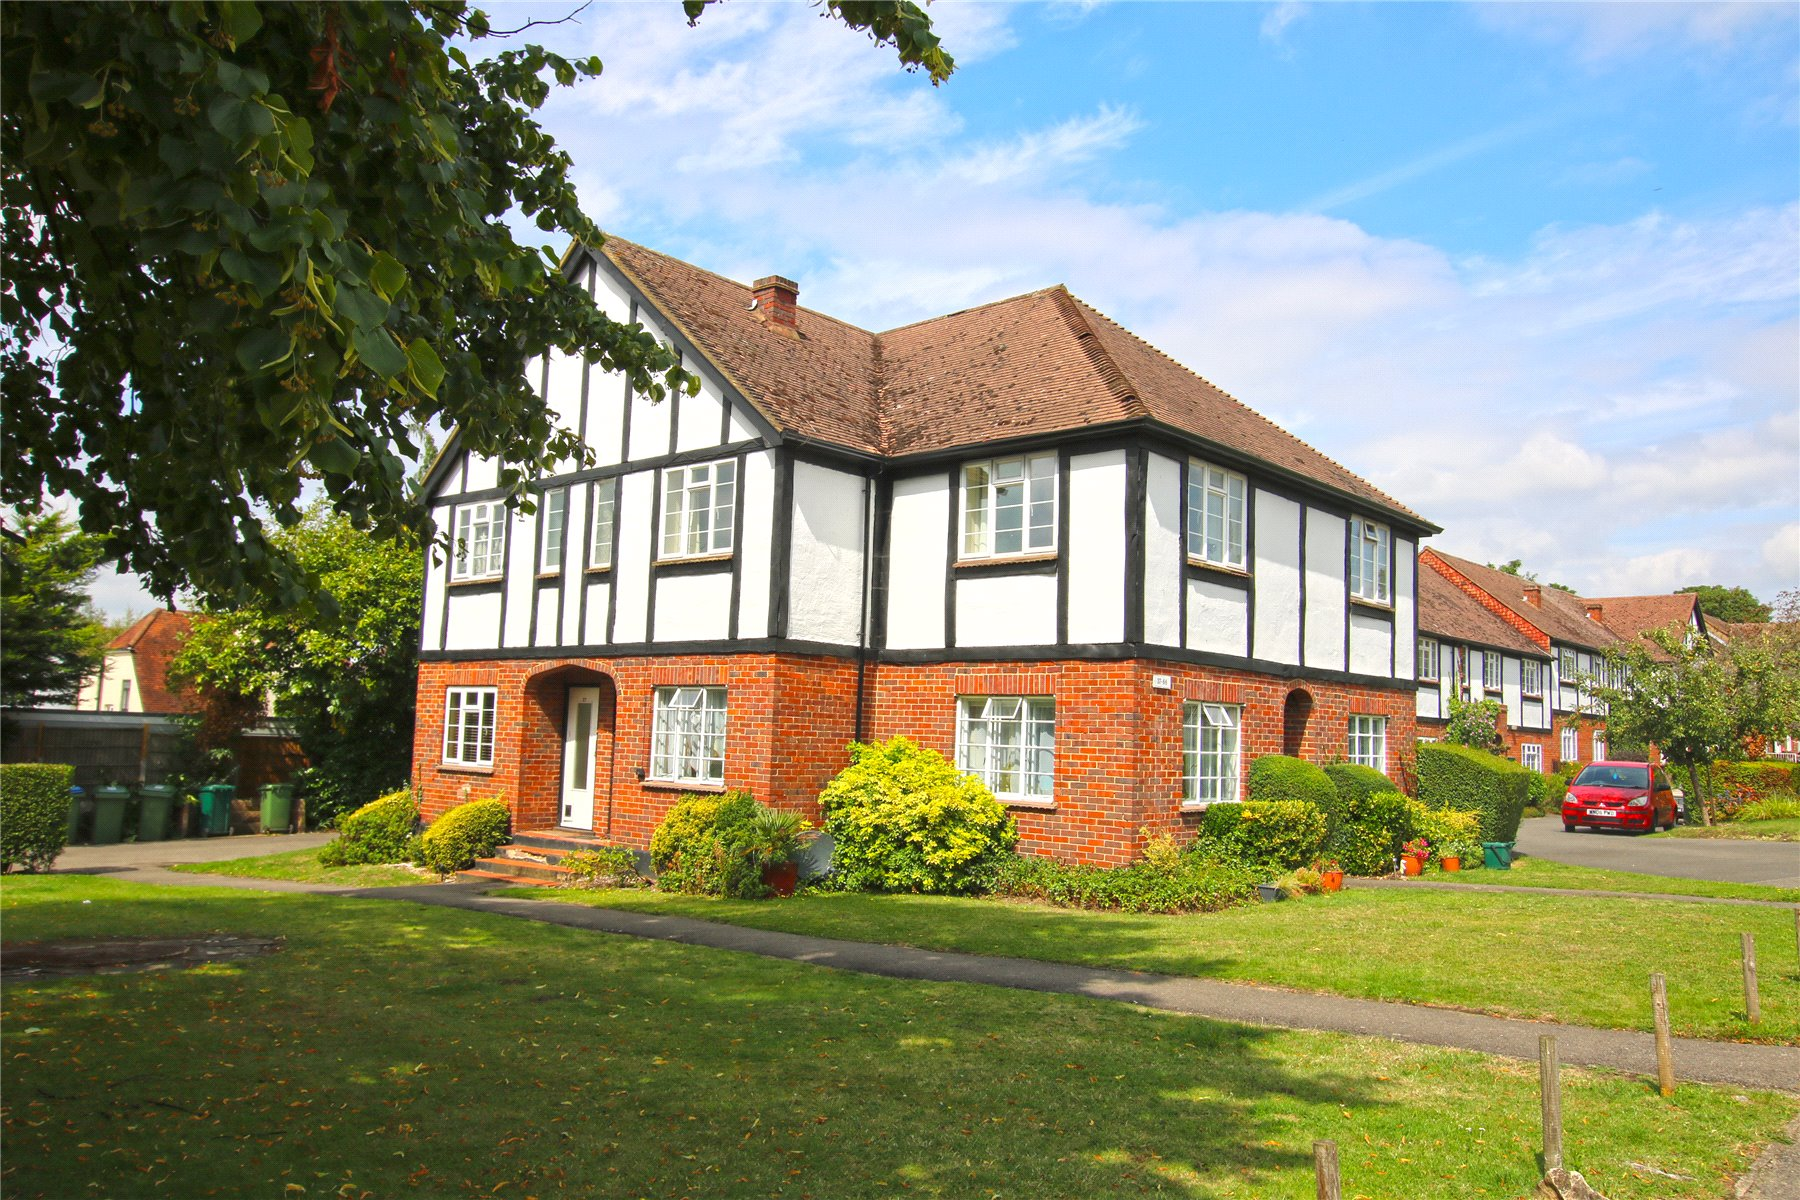 2 Bedrooms Apartment Flat for sale in Arlington Lodge, Monument Hill, Weybridge, Surrey, KT13